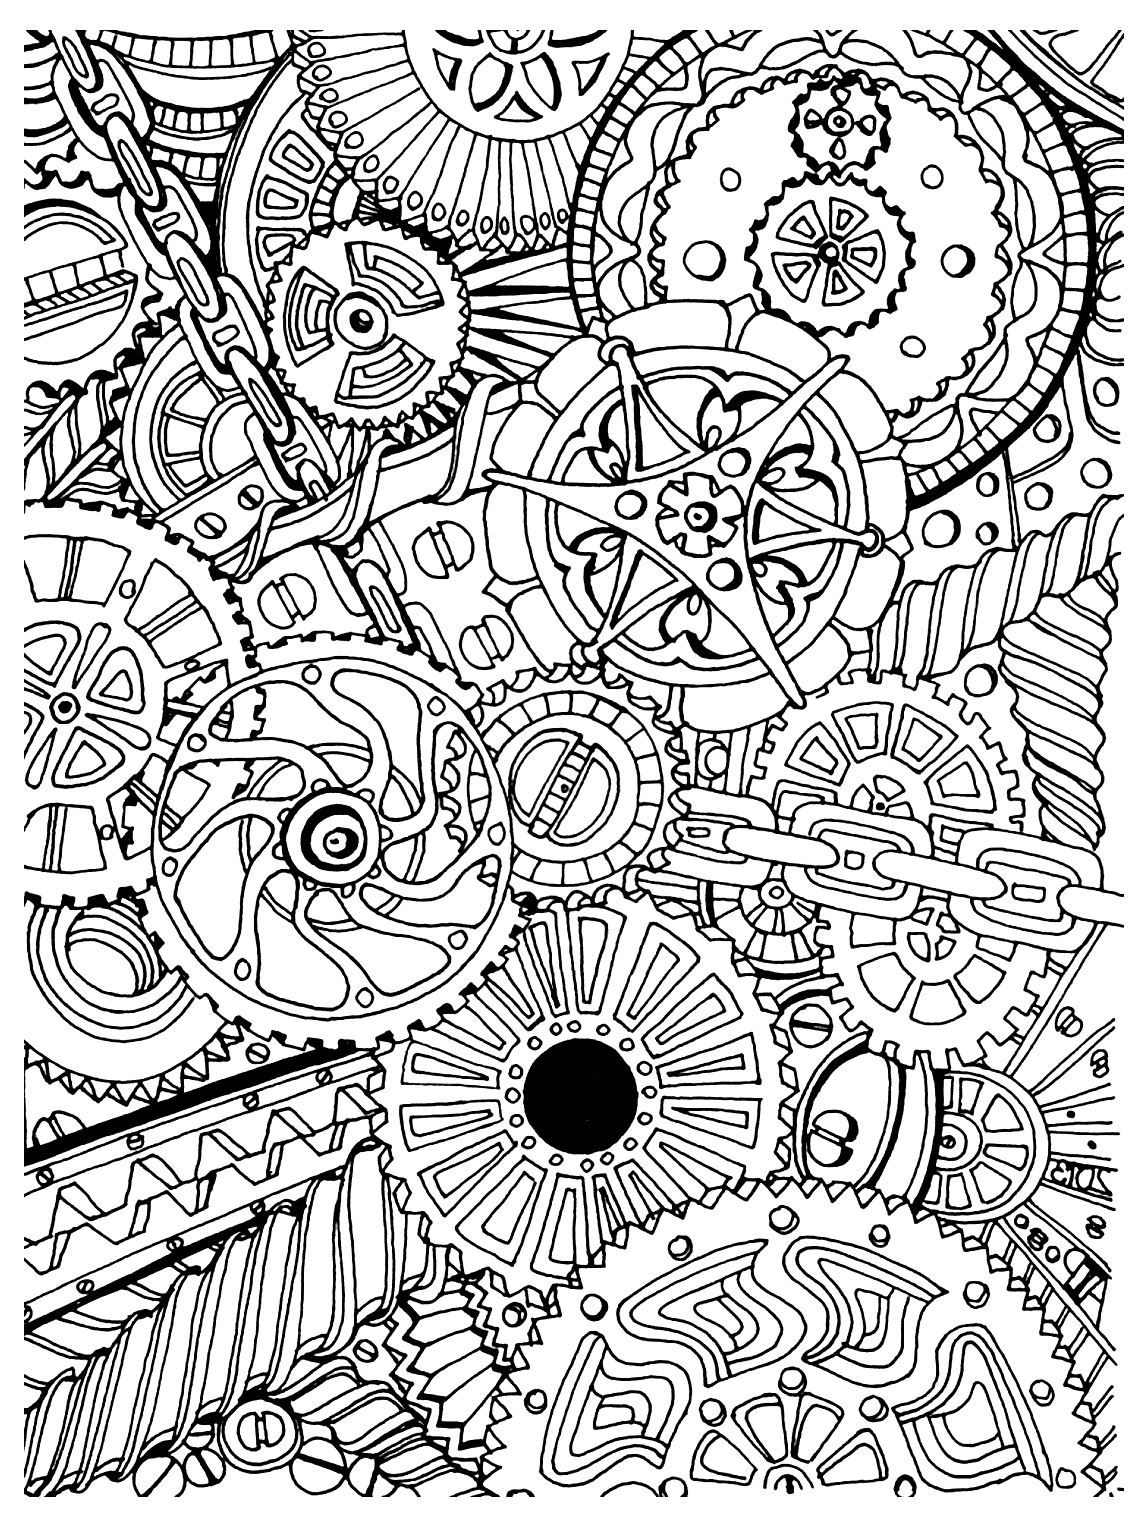 Zen colouring advanced art therapy collector edition - To Print This Free Coloring Page Coloring Adult Zen Anti Stress